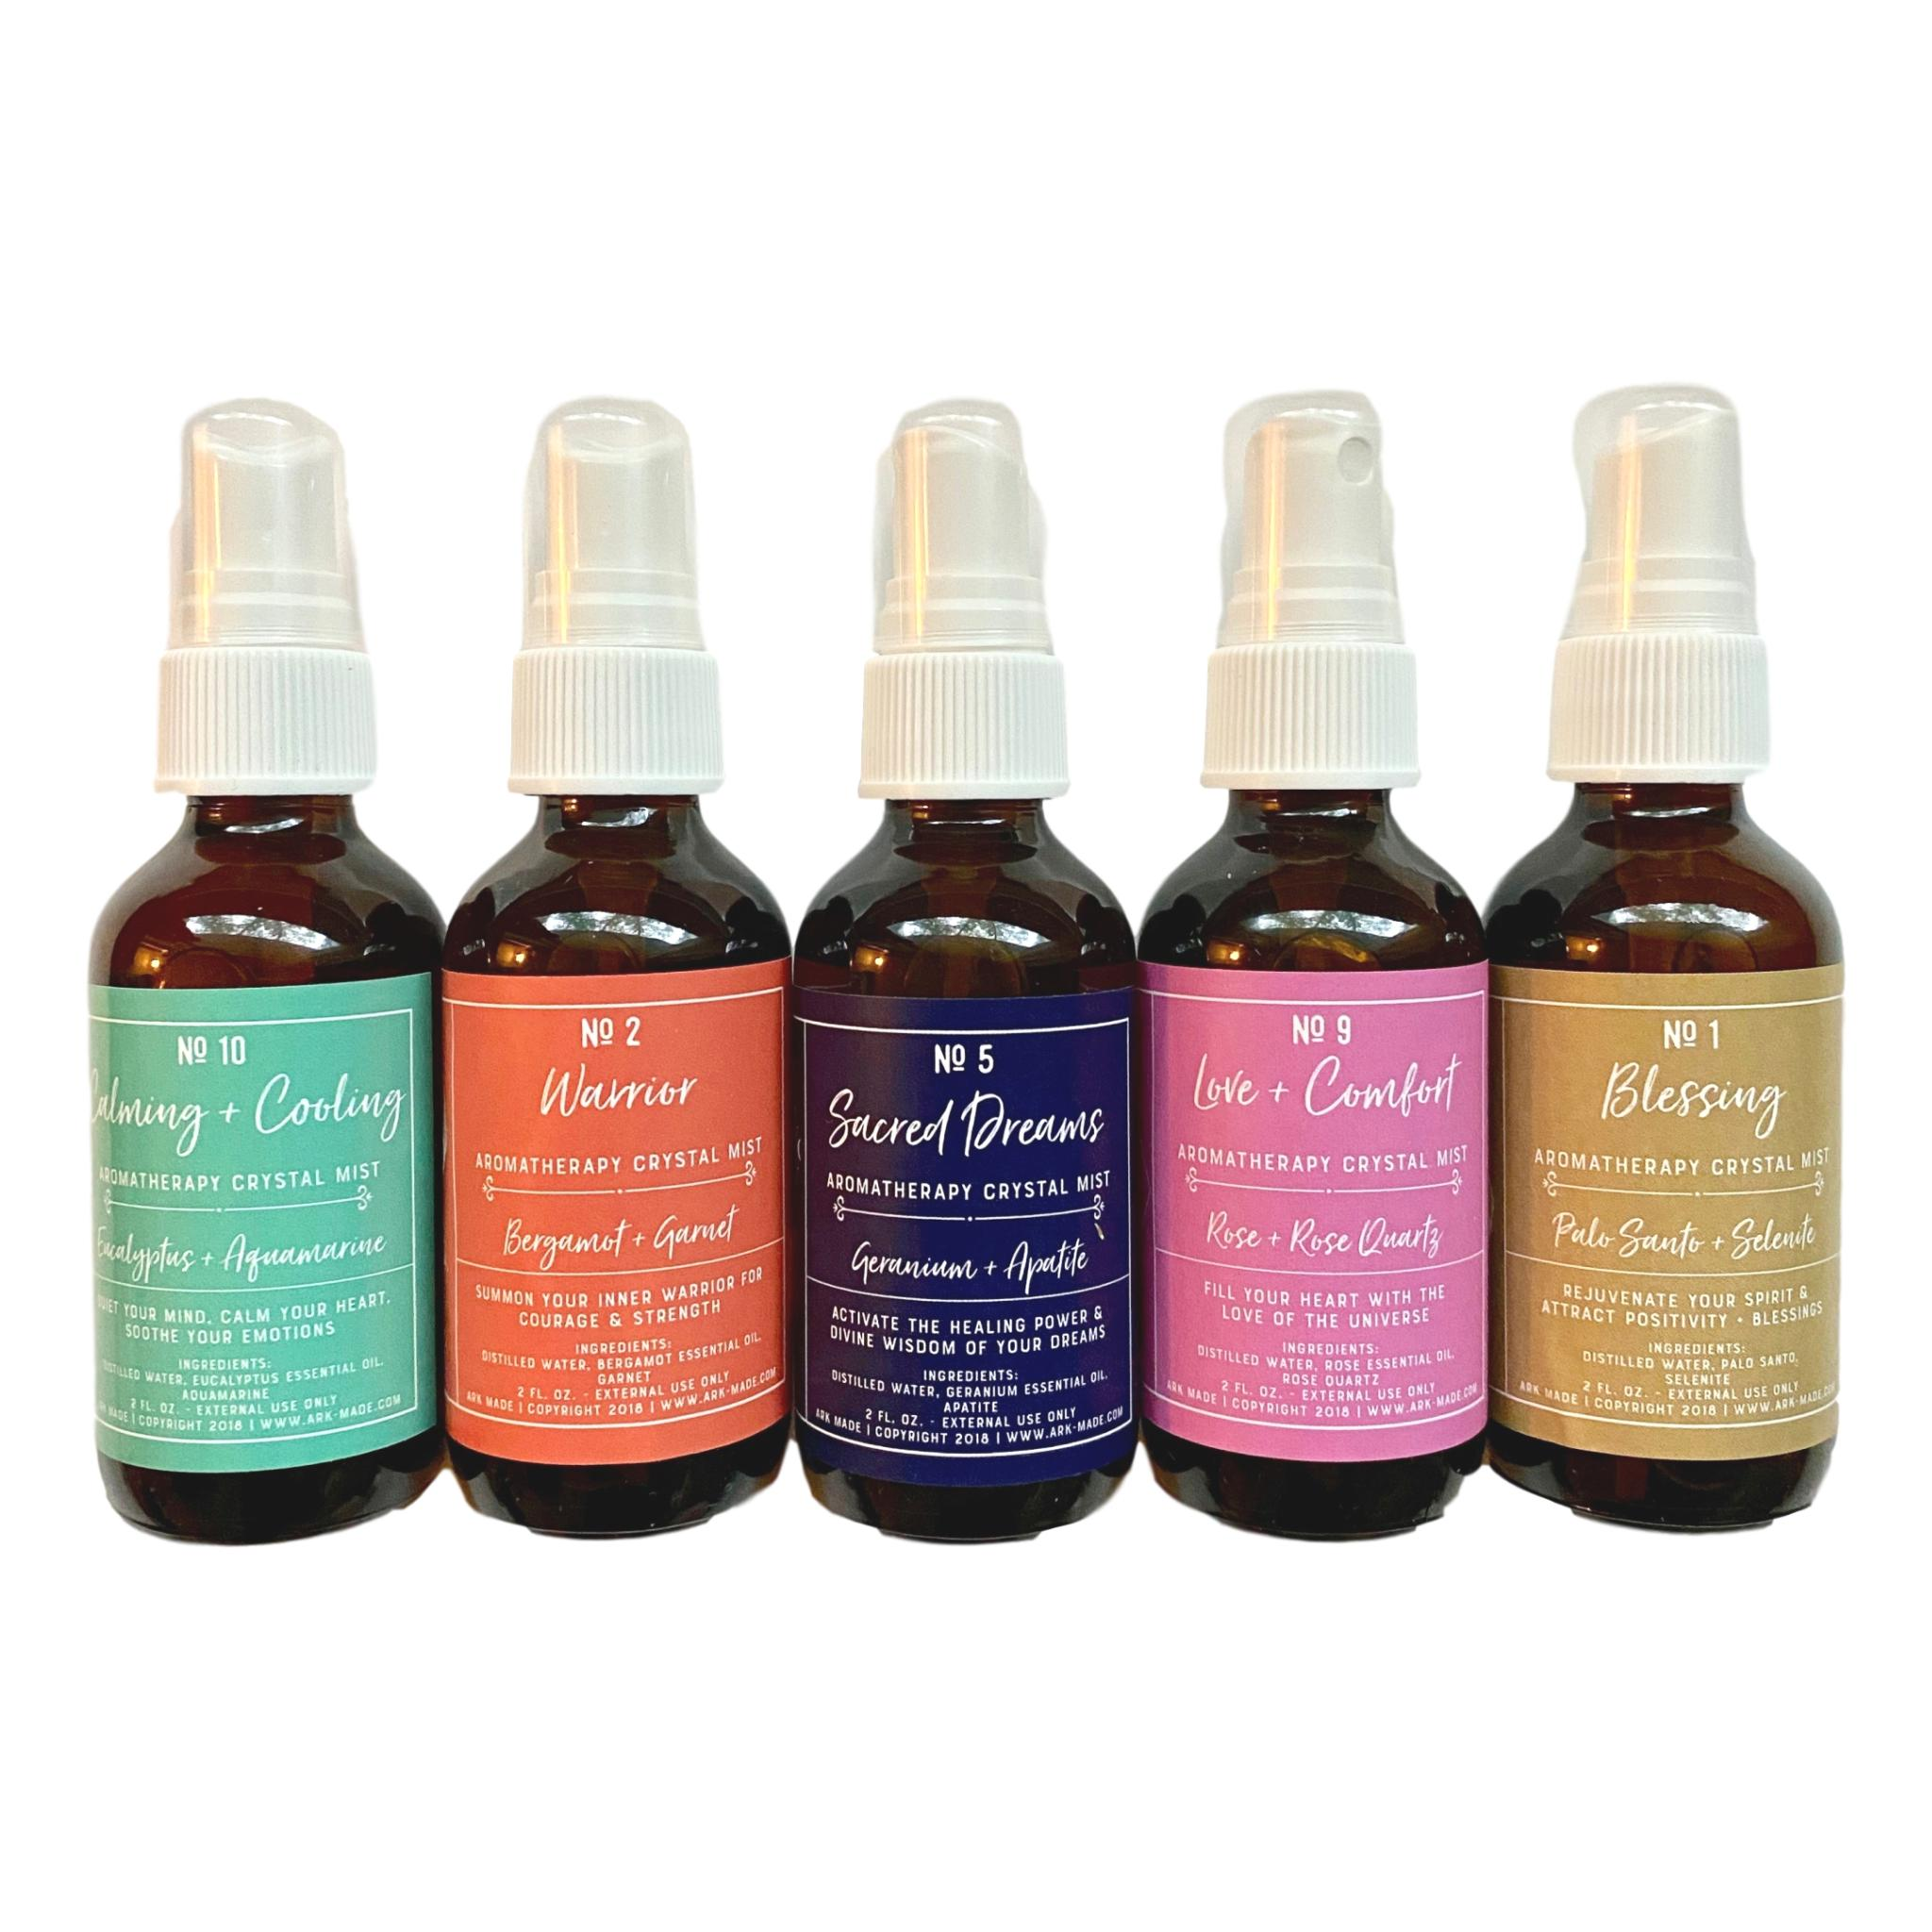 Aromatherapy Crystal Mist - Blessing - Giften Market